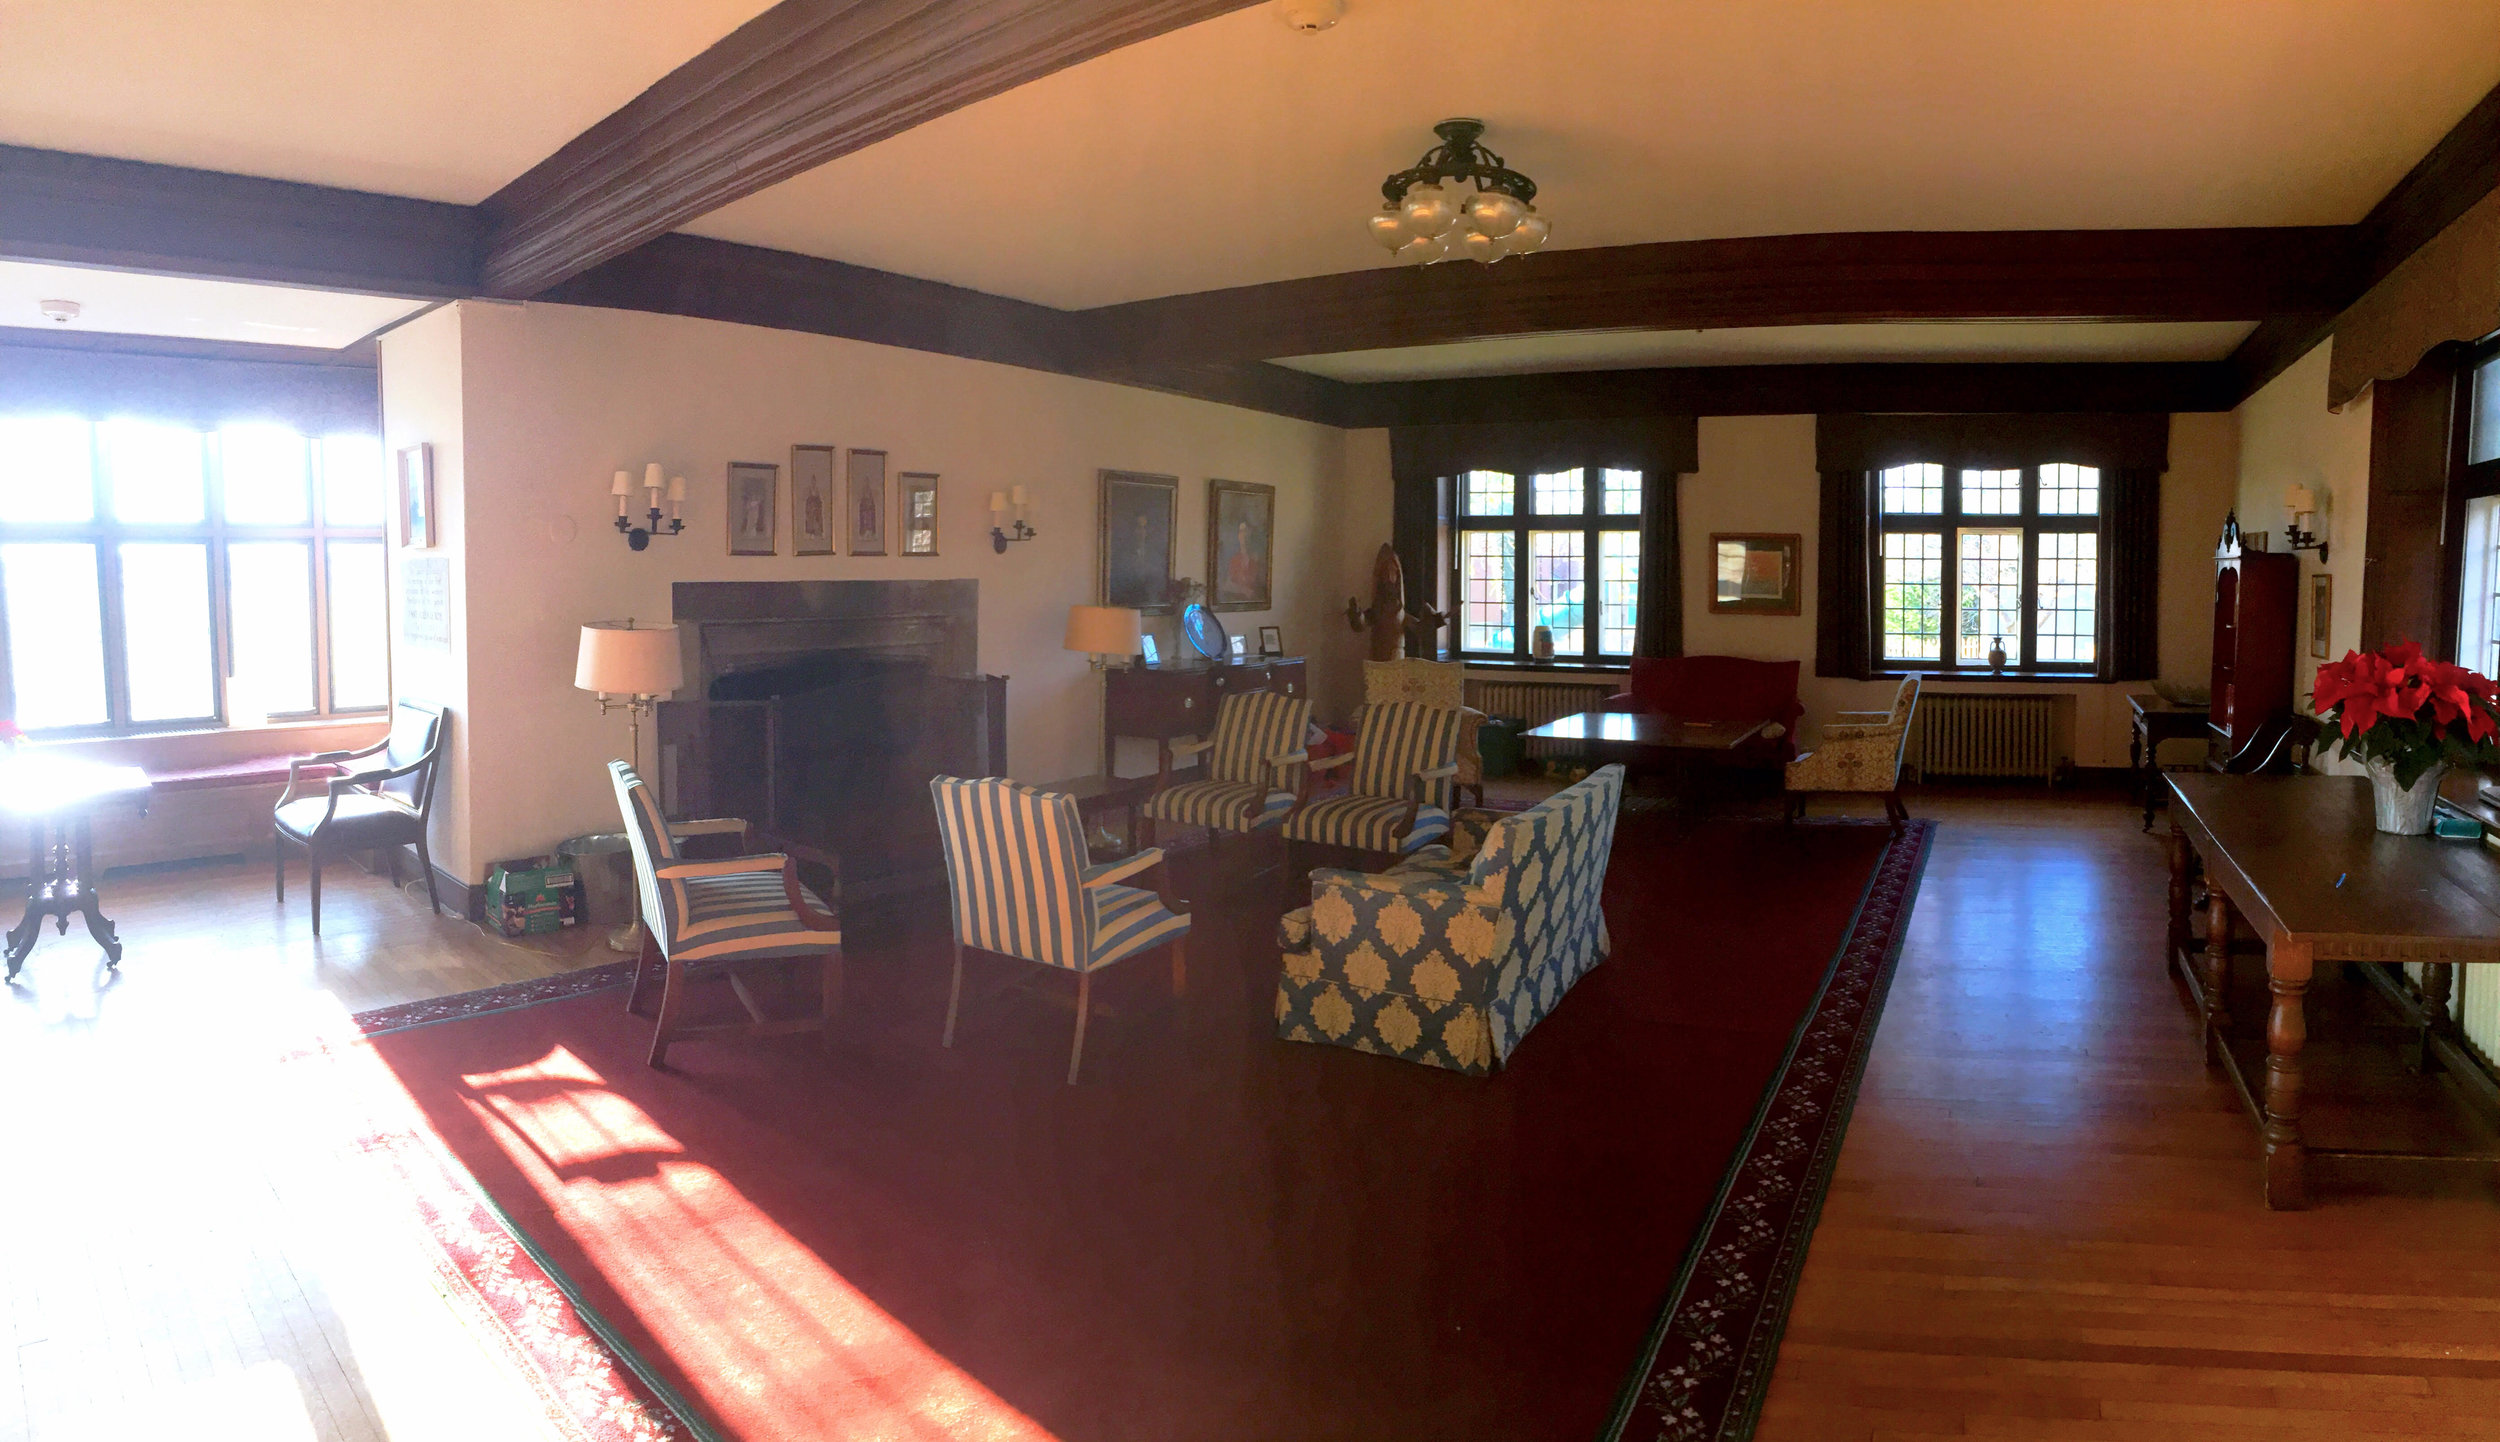 The Houston Room at Church of St. Martin-in-the-Fields' Parish House, where our retreat will be held